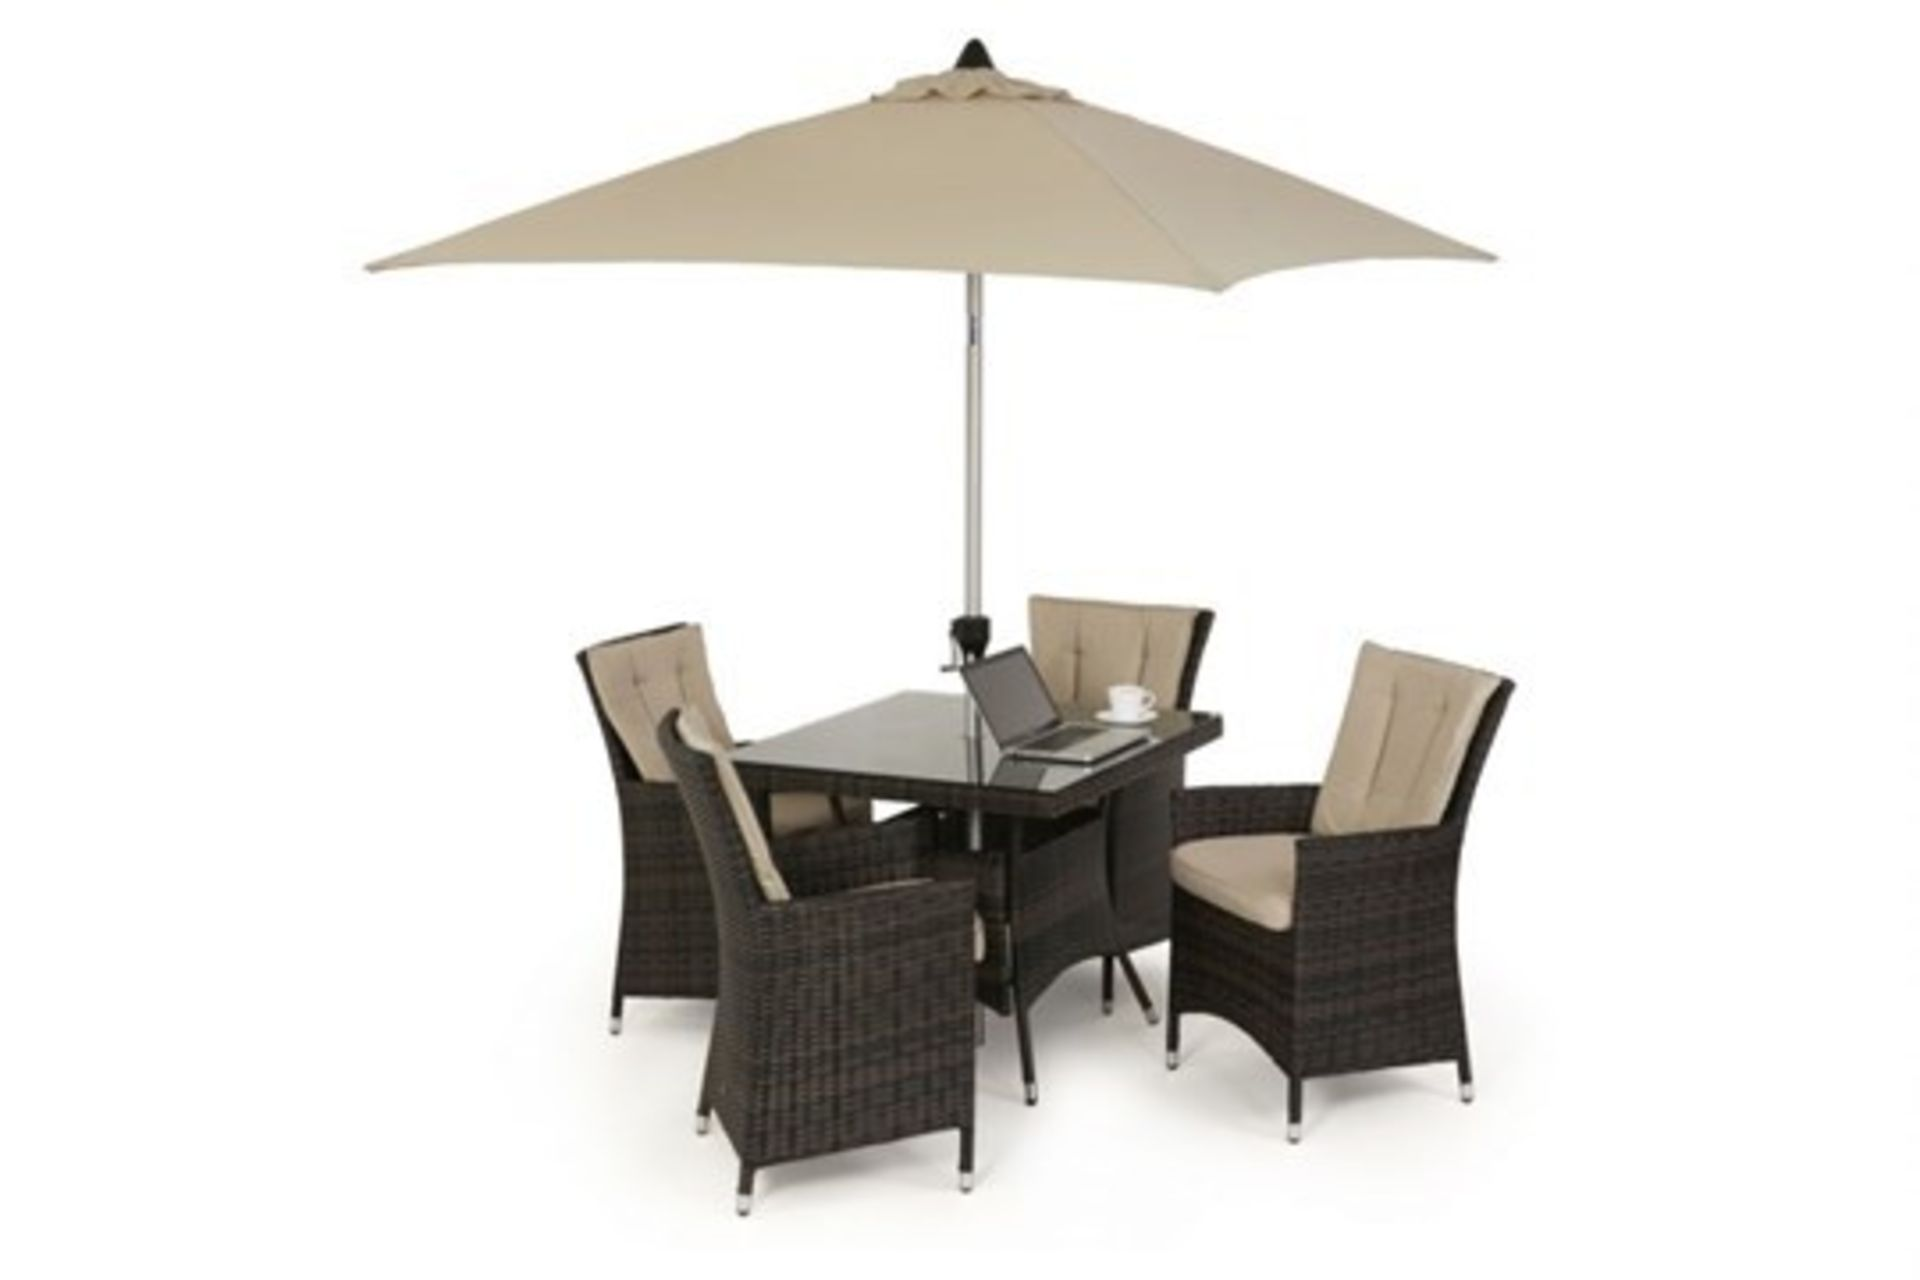 Lot 30 - Rattan LA 4 Seat Square Outdoor Dining Set With Parasol (Brown) *BRAND NEW*